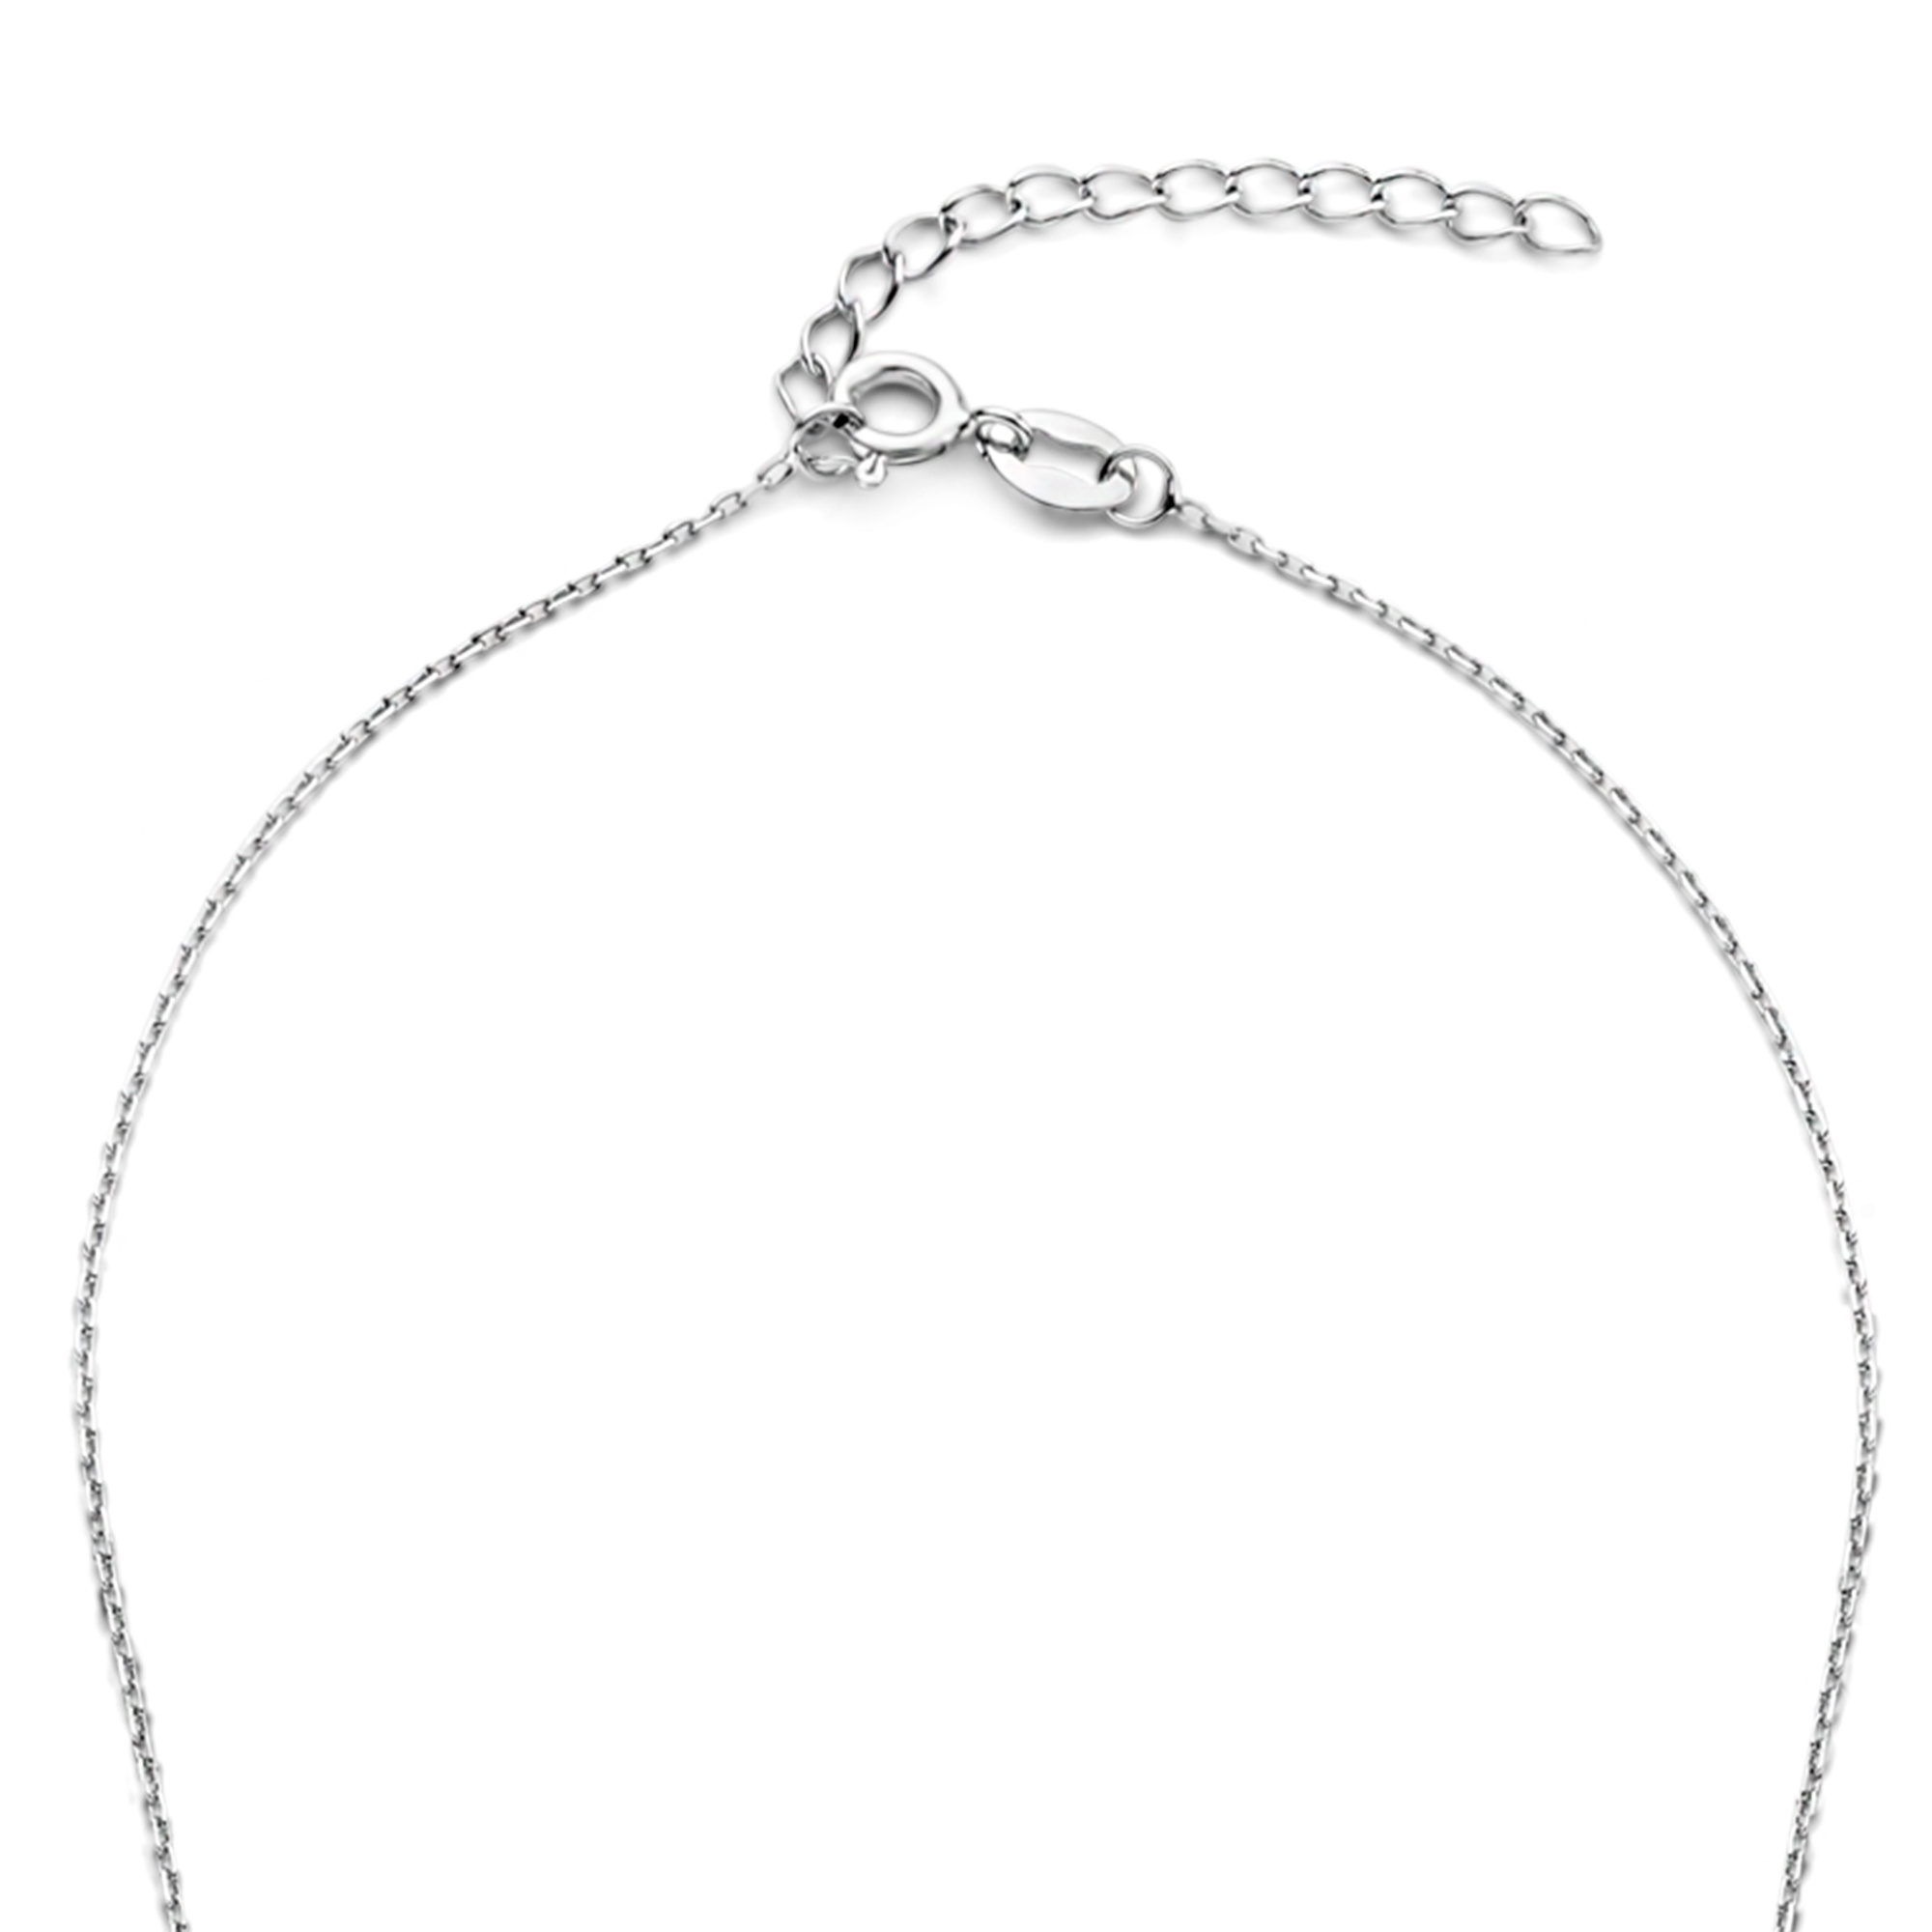 Selected Jewels Aimée 925 sterling silver necklace with hearts